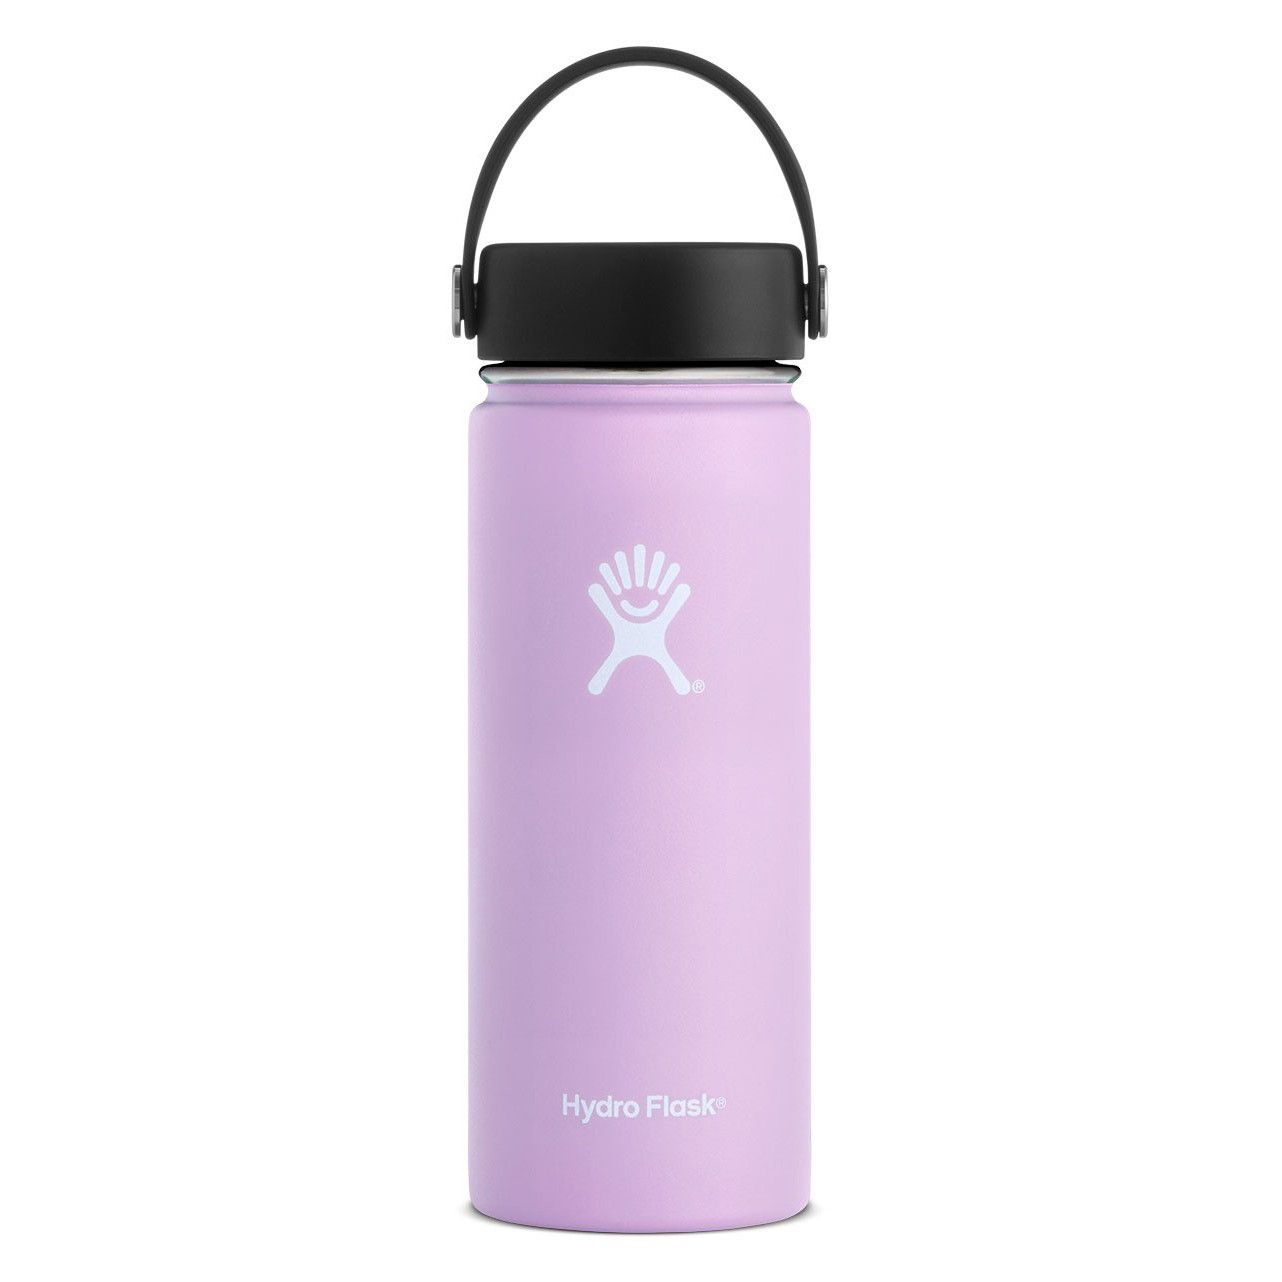 Hydro Flask Vacuum Insulated Bottle In Lilac 18oz Flask Water Bottle Hydro Flask Water Bottle Hydroflask